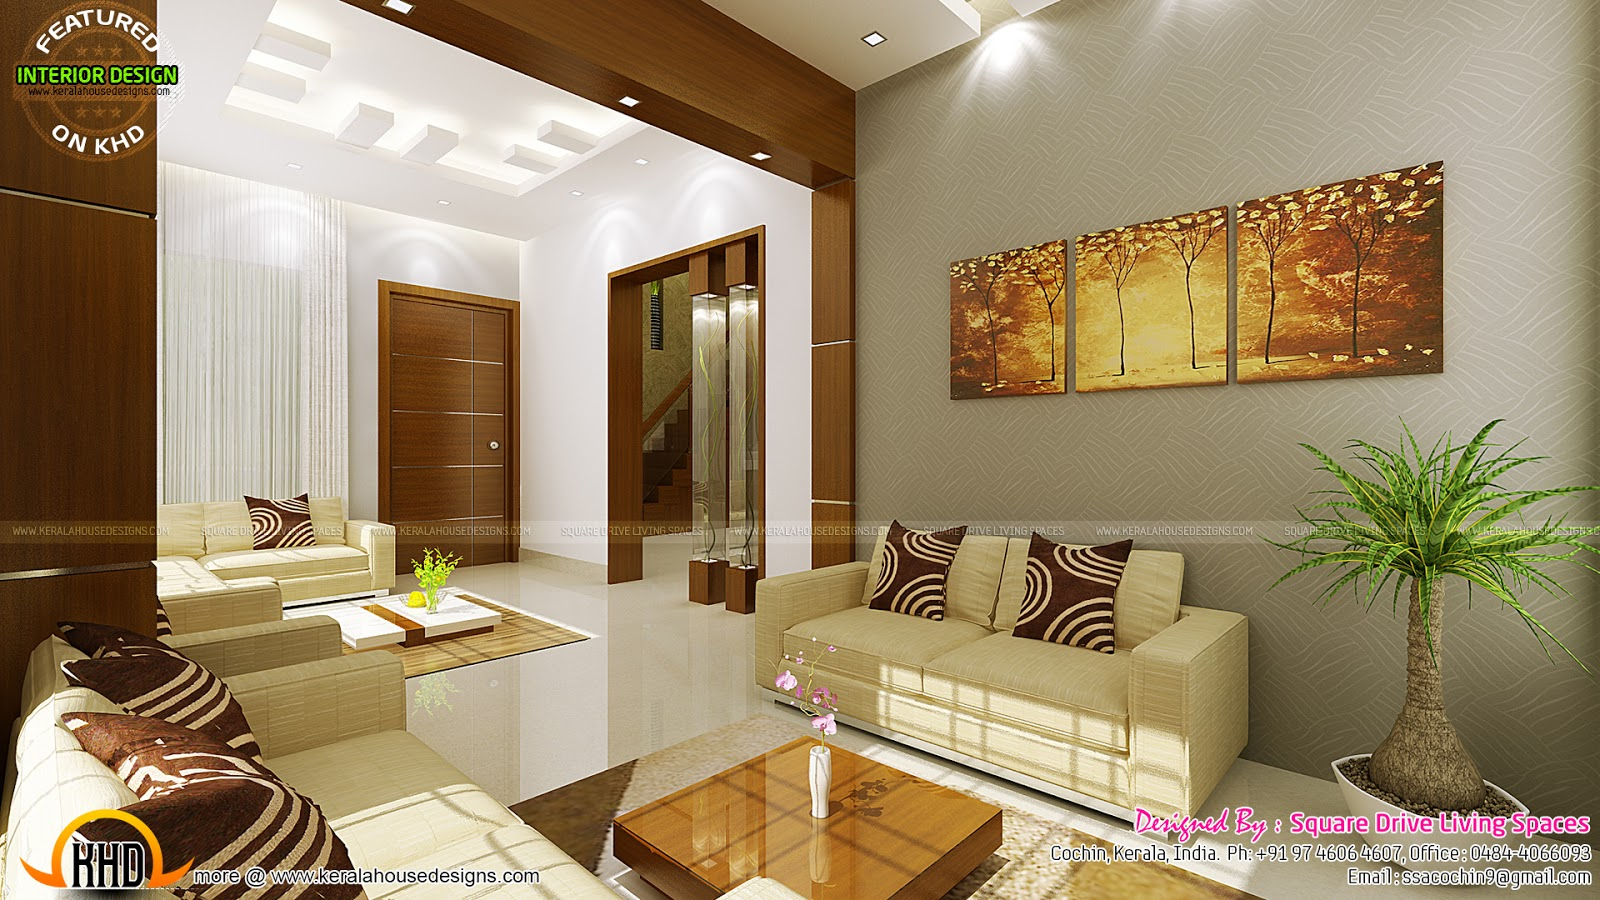 Contemporary kitchen dining and living room kerala home for Interior design plans for houses